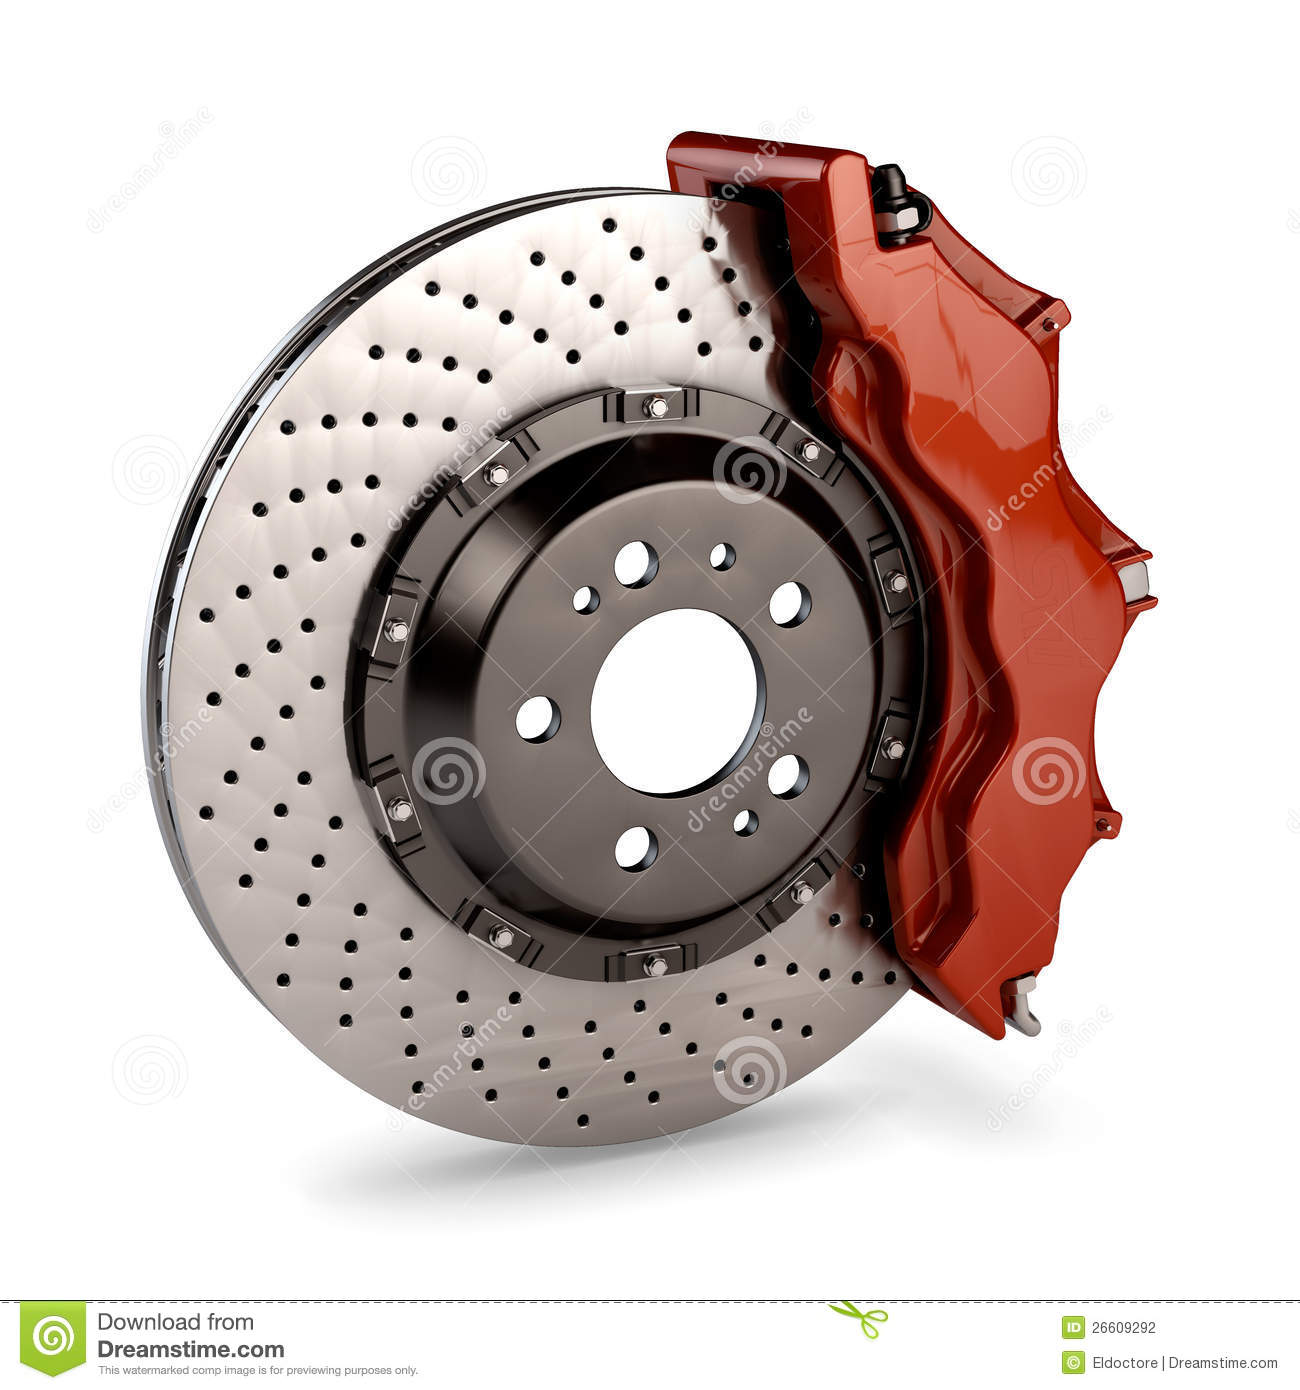 brake disc and red calliper from a racing car stock illustration illustration of wheel. Black Bedroom Furniture Sets. Home Design Ideas